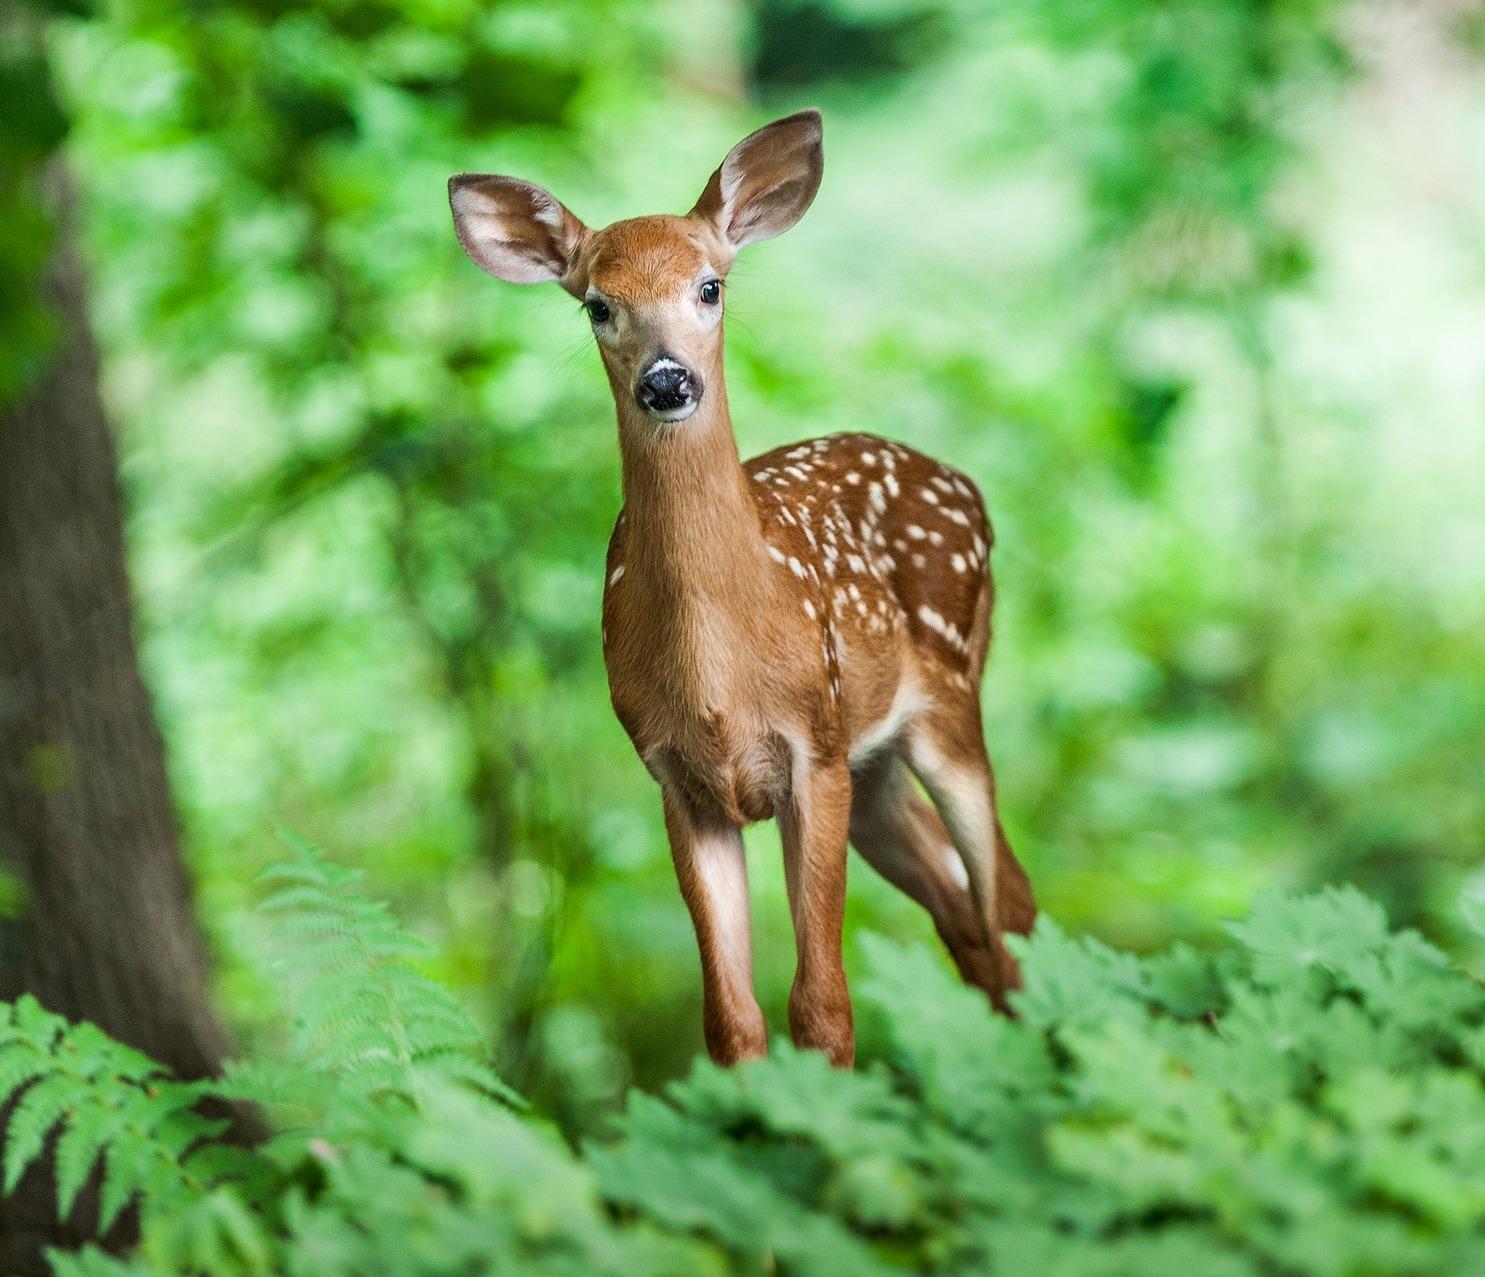 Deer: How to Identity and Keep Deer Out of Your Garden ...